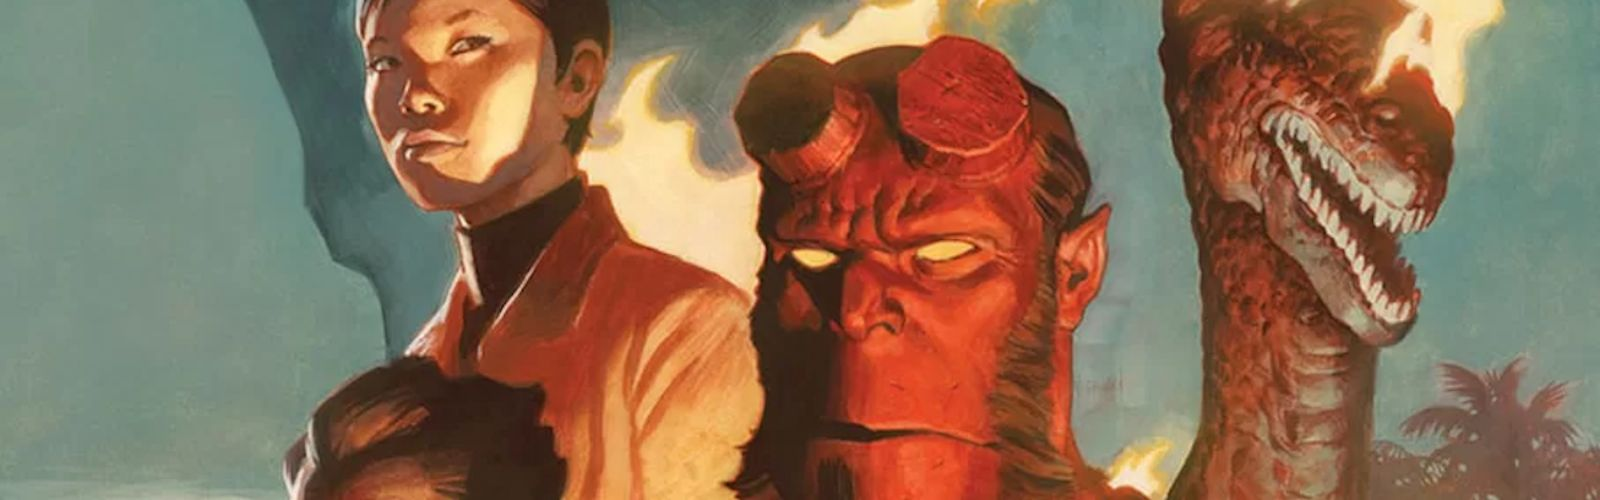 Hellboy and the B.P.R.D.: 1955 – Burning Season